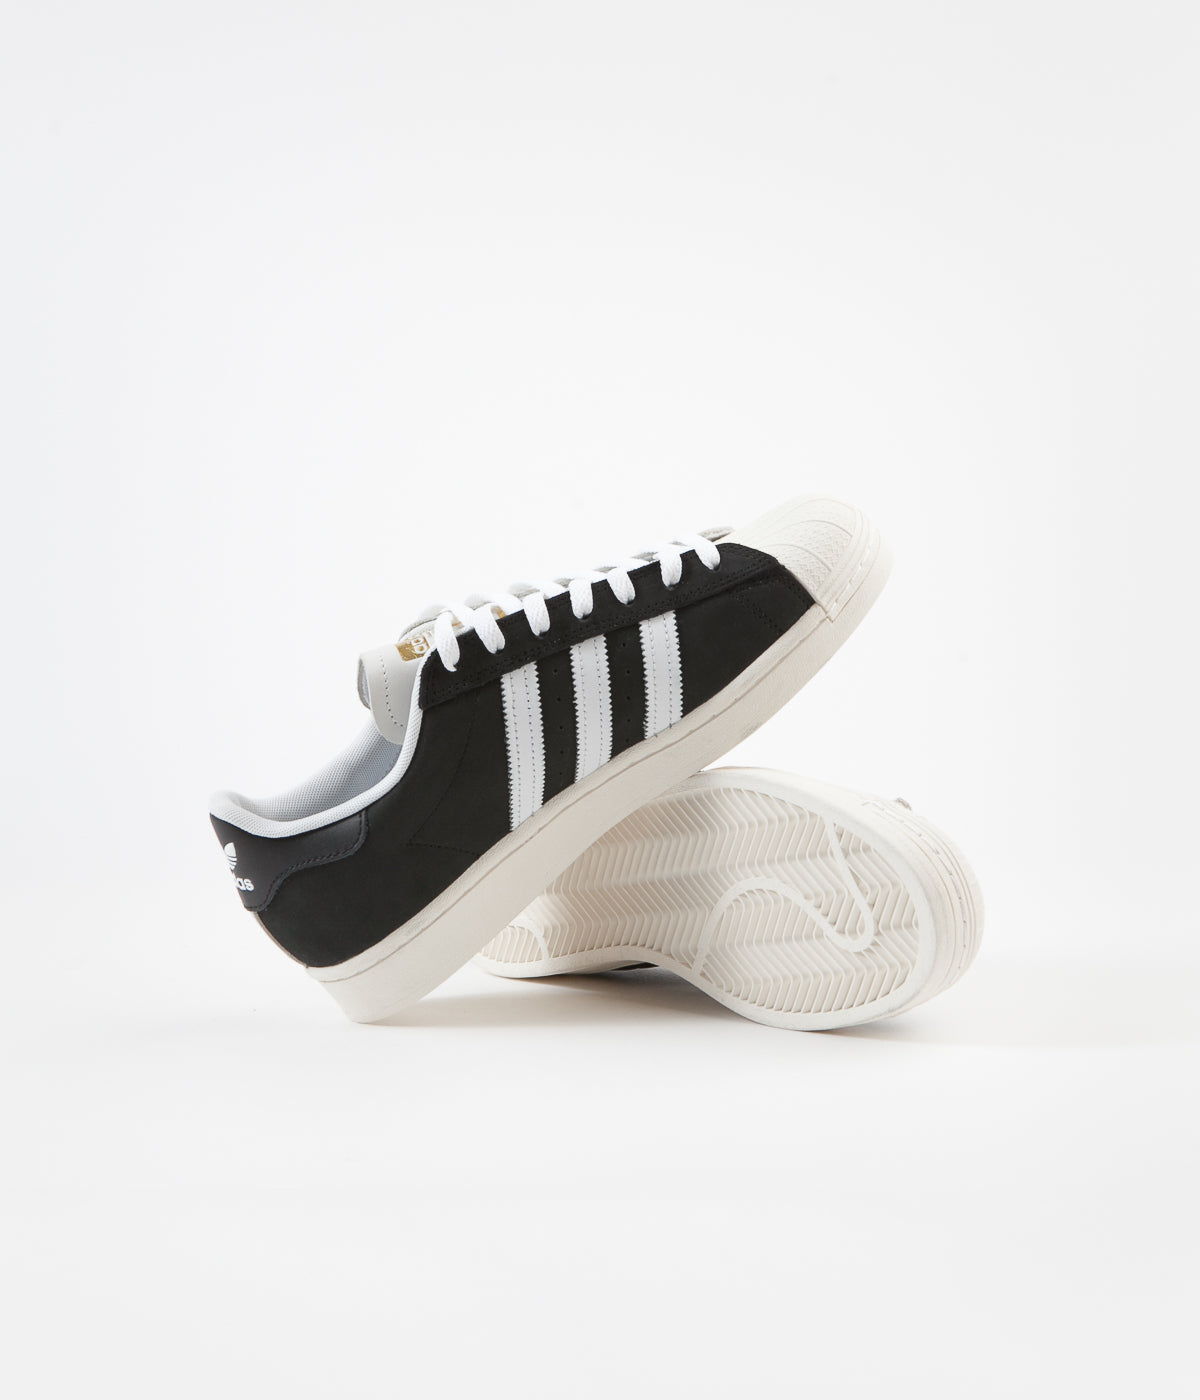 Adidas Superstar Shoes - 2 Tone / White / Core Black / Gold Metallic